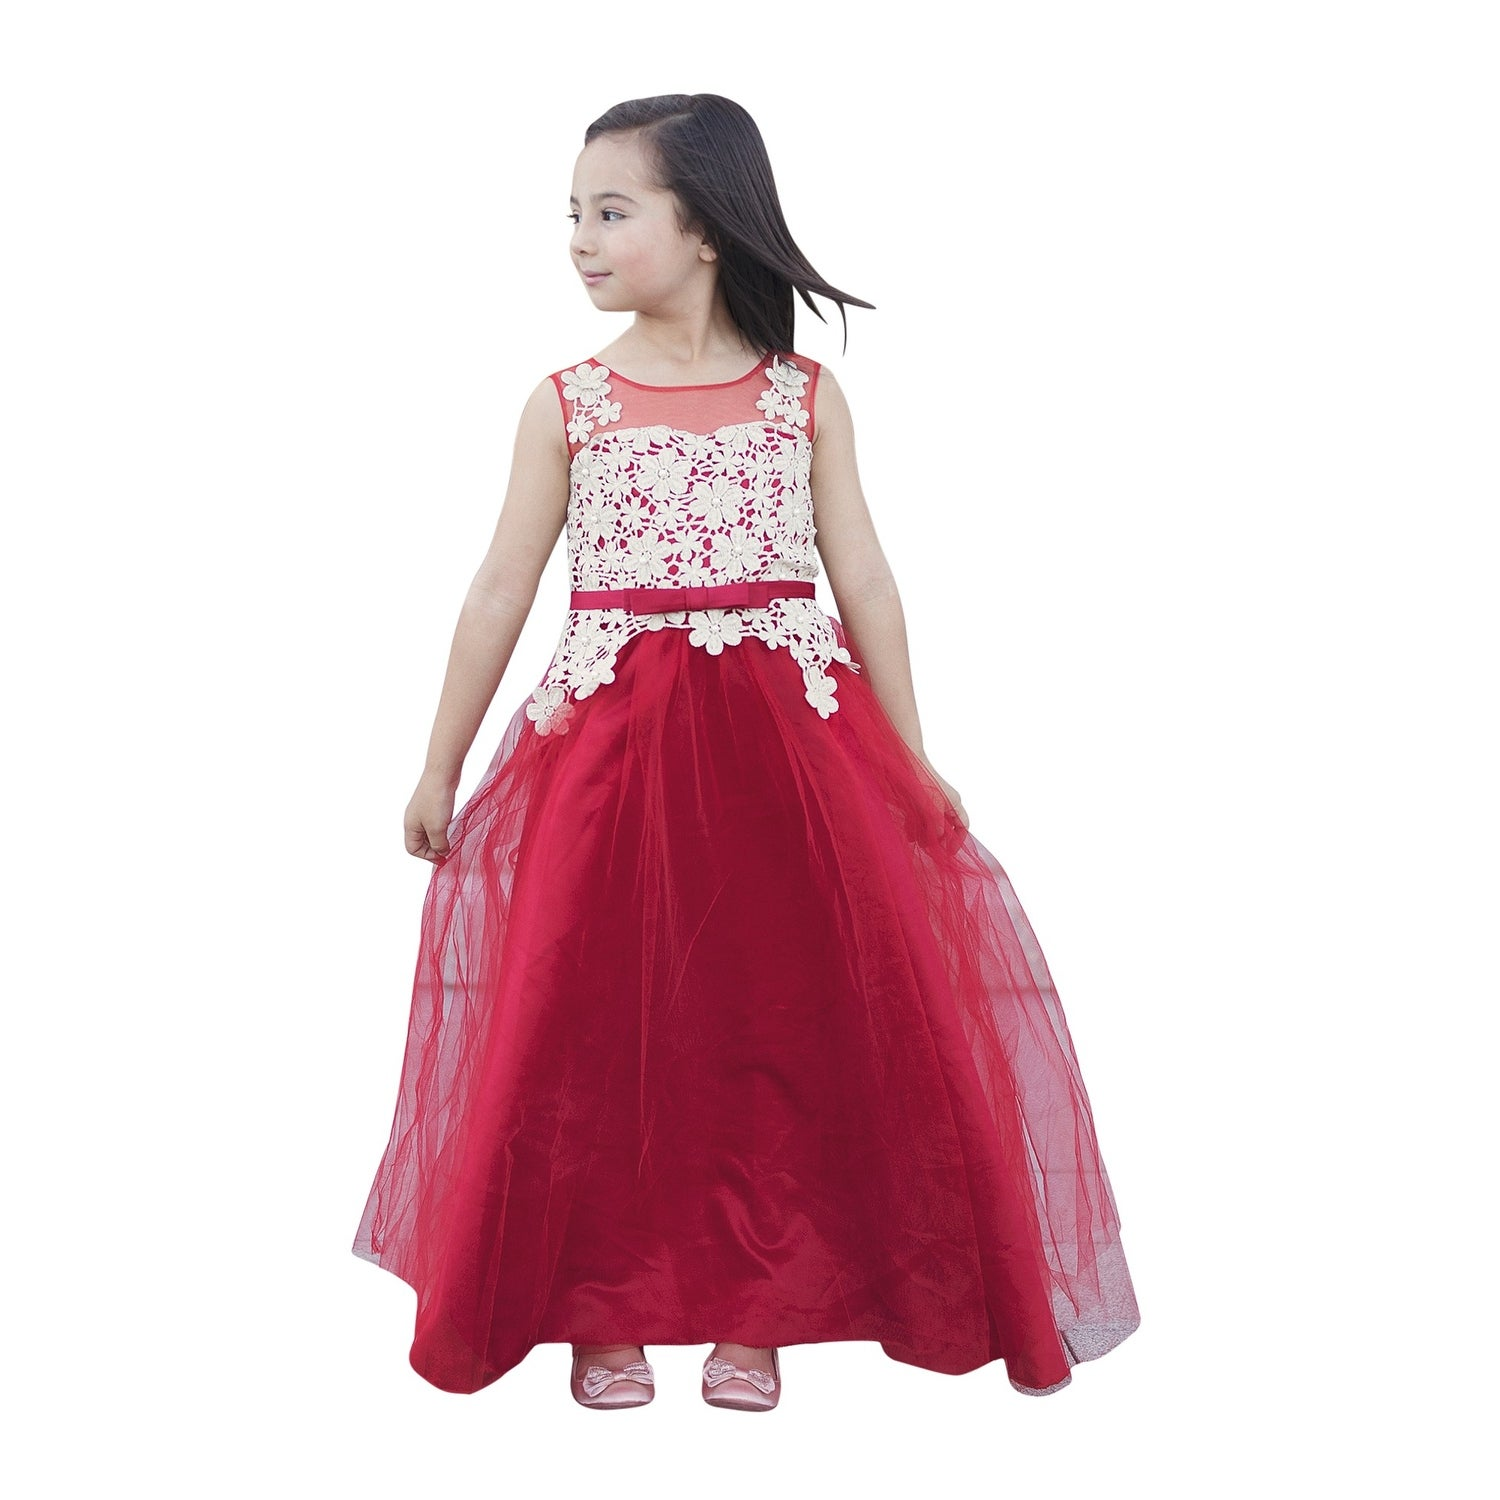 beb1c4dac Shop Girls Red Gold Floral Lace Floor Length Fiona Junior Bridesmaid Dress  - Ships To Canada - Overstock - 23077926